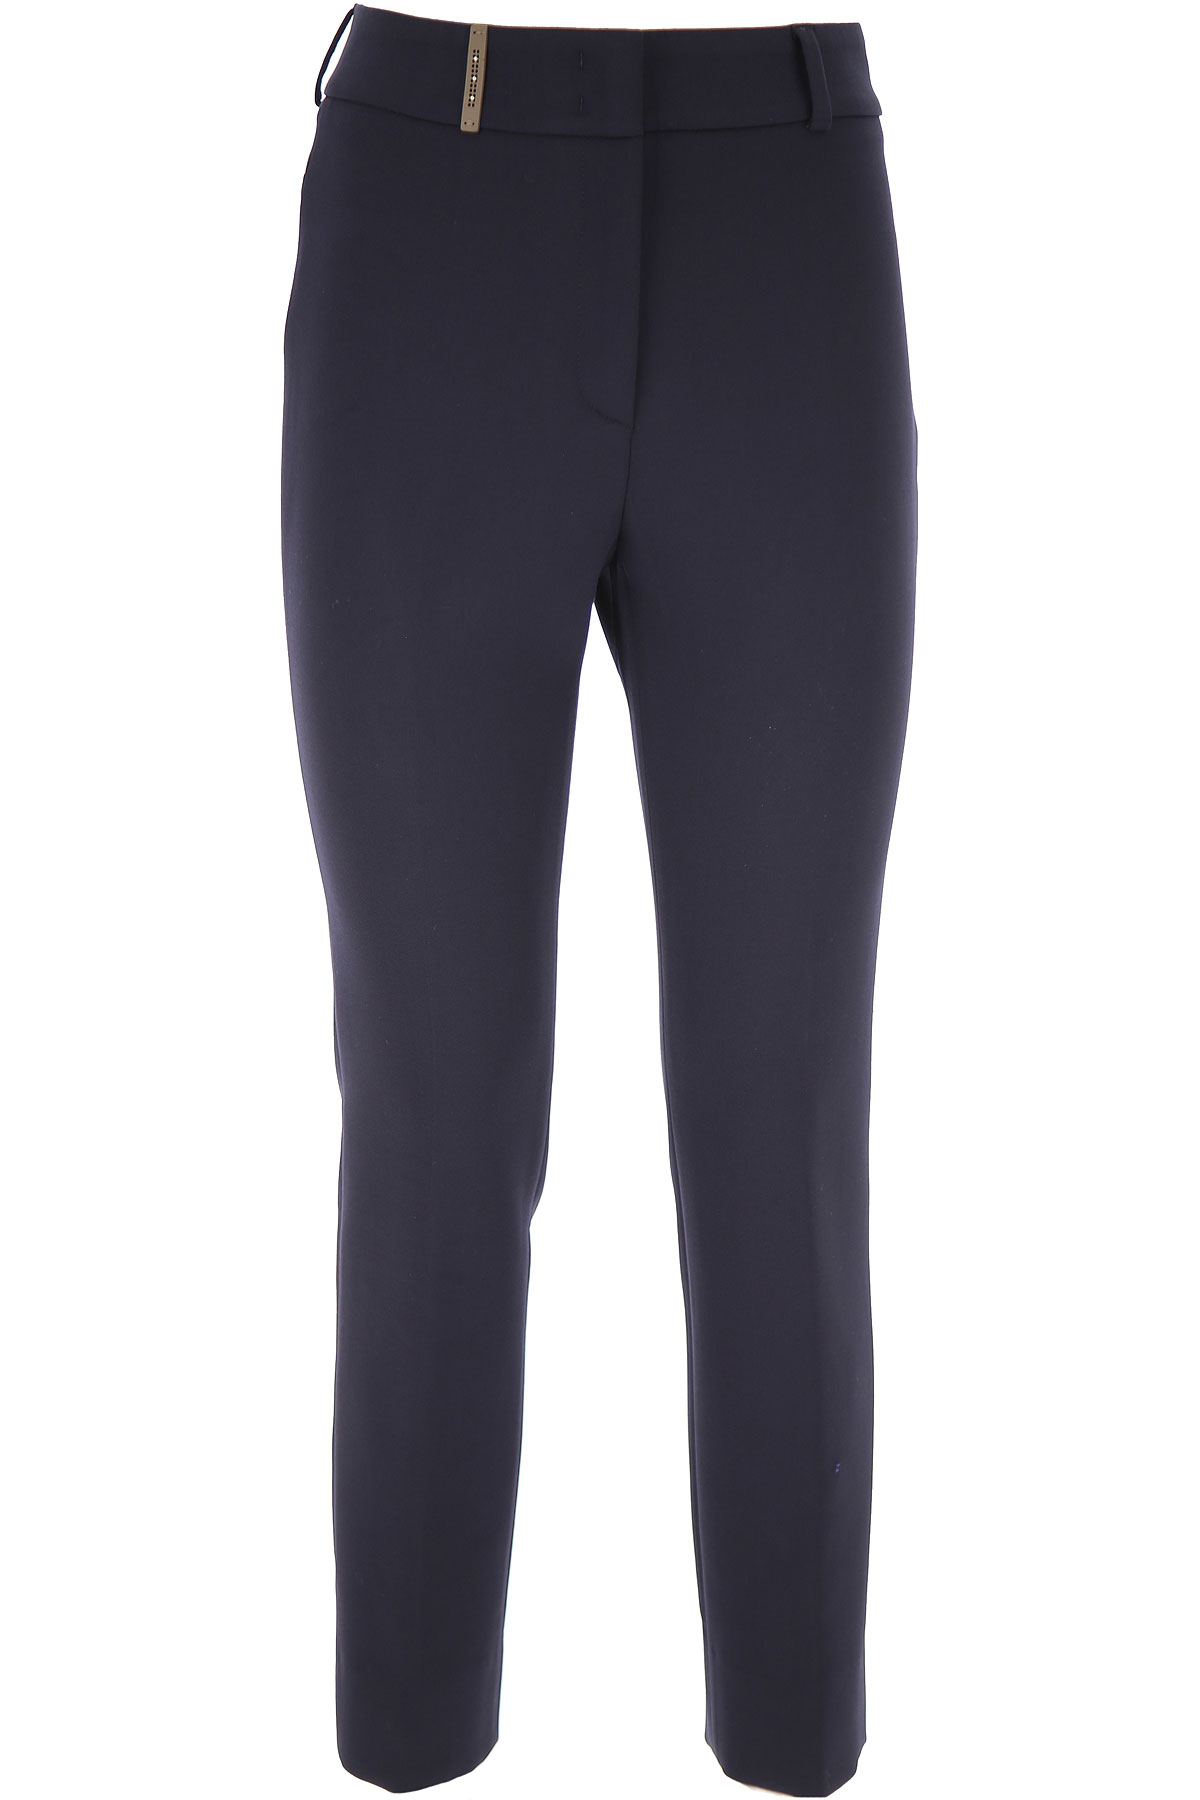 Peserico Pants for Women On Sale, Blue Ink, polyester, 2019, 26 34 4